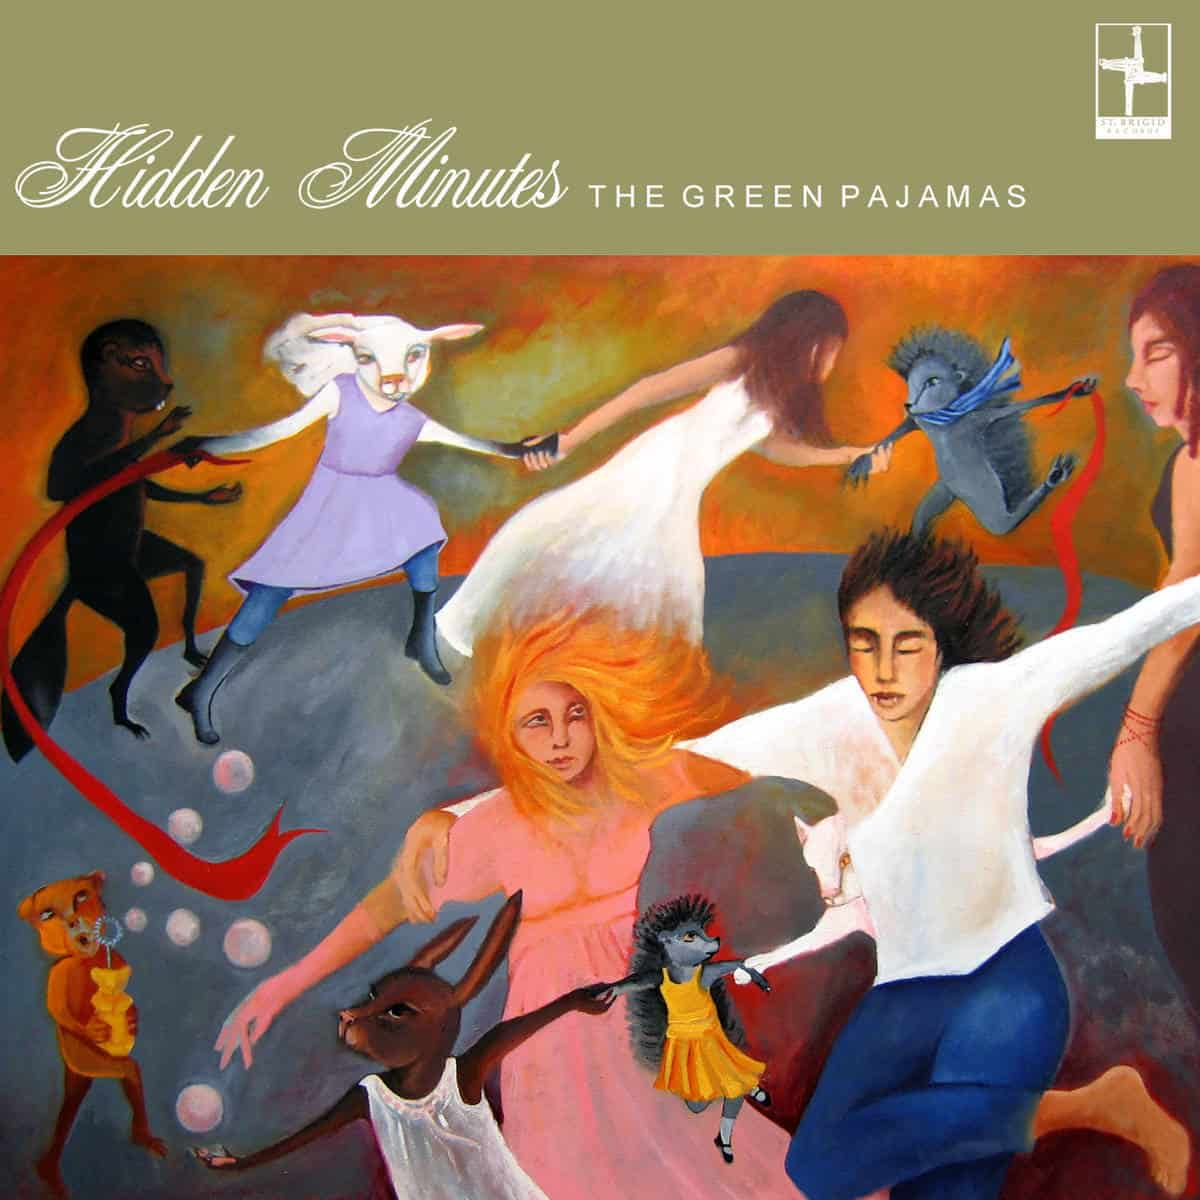 "12"" Vinyl LP The Green Pajamas – Hidden Minutes on Sale now!"